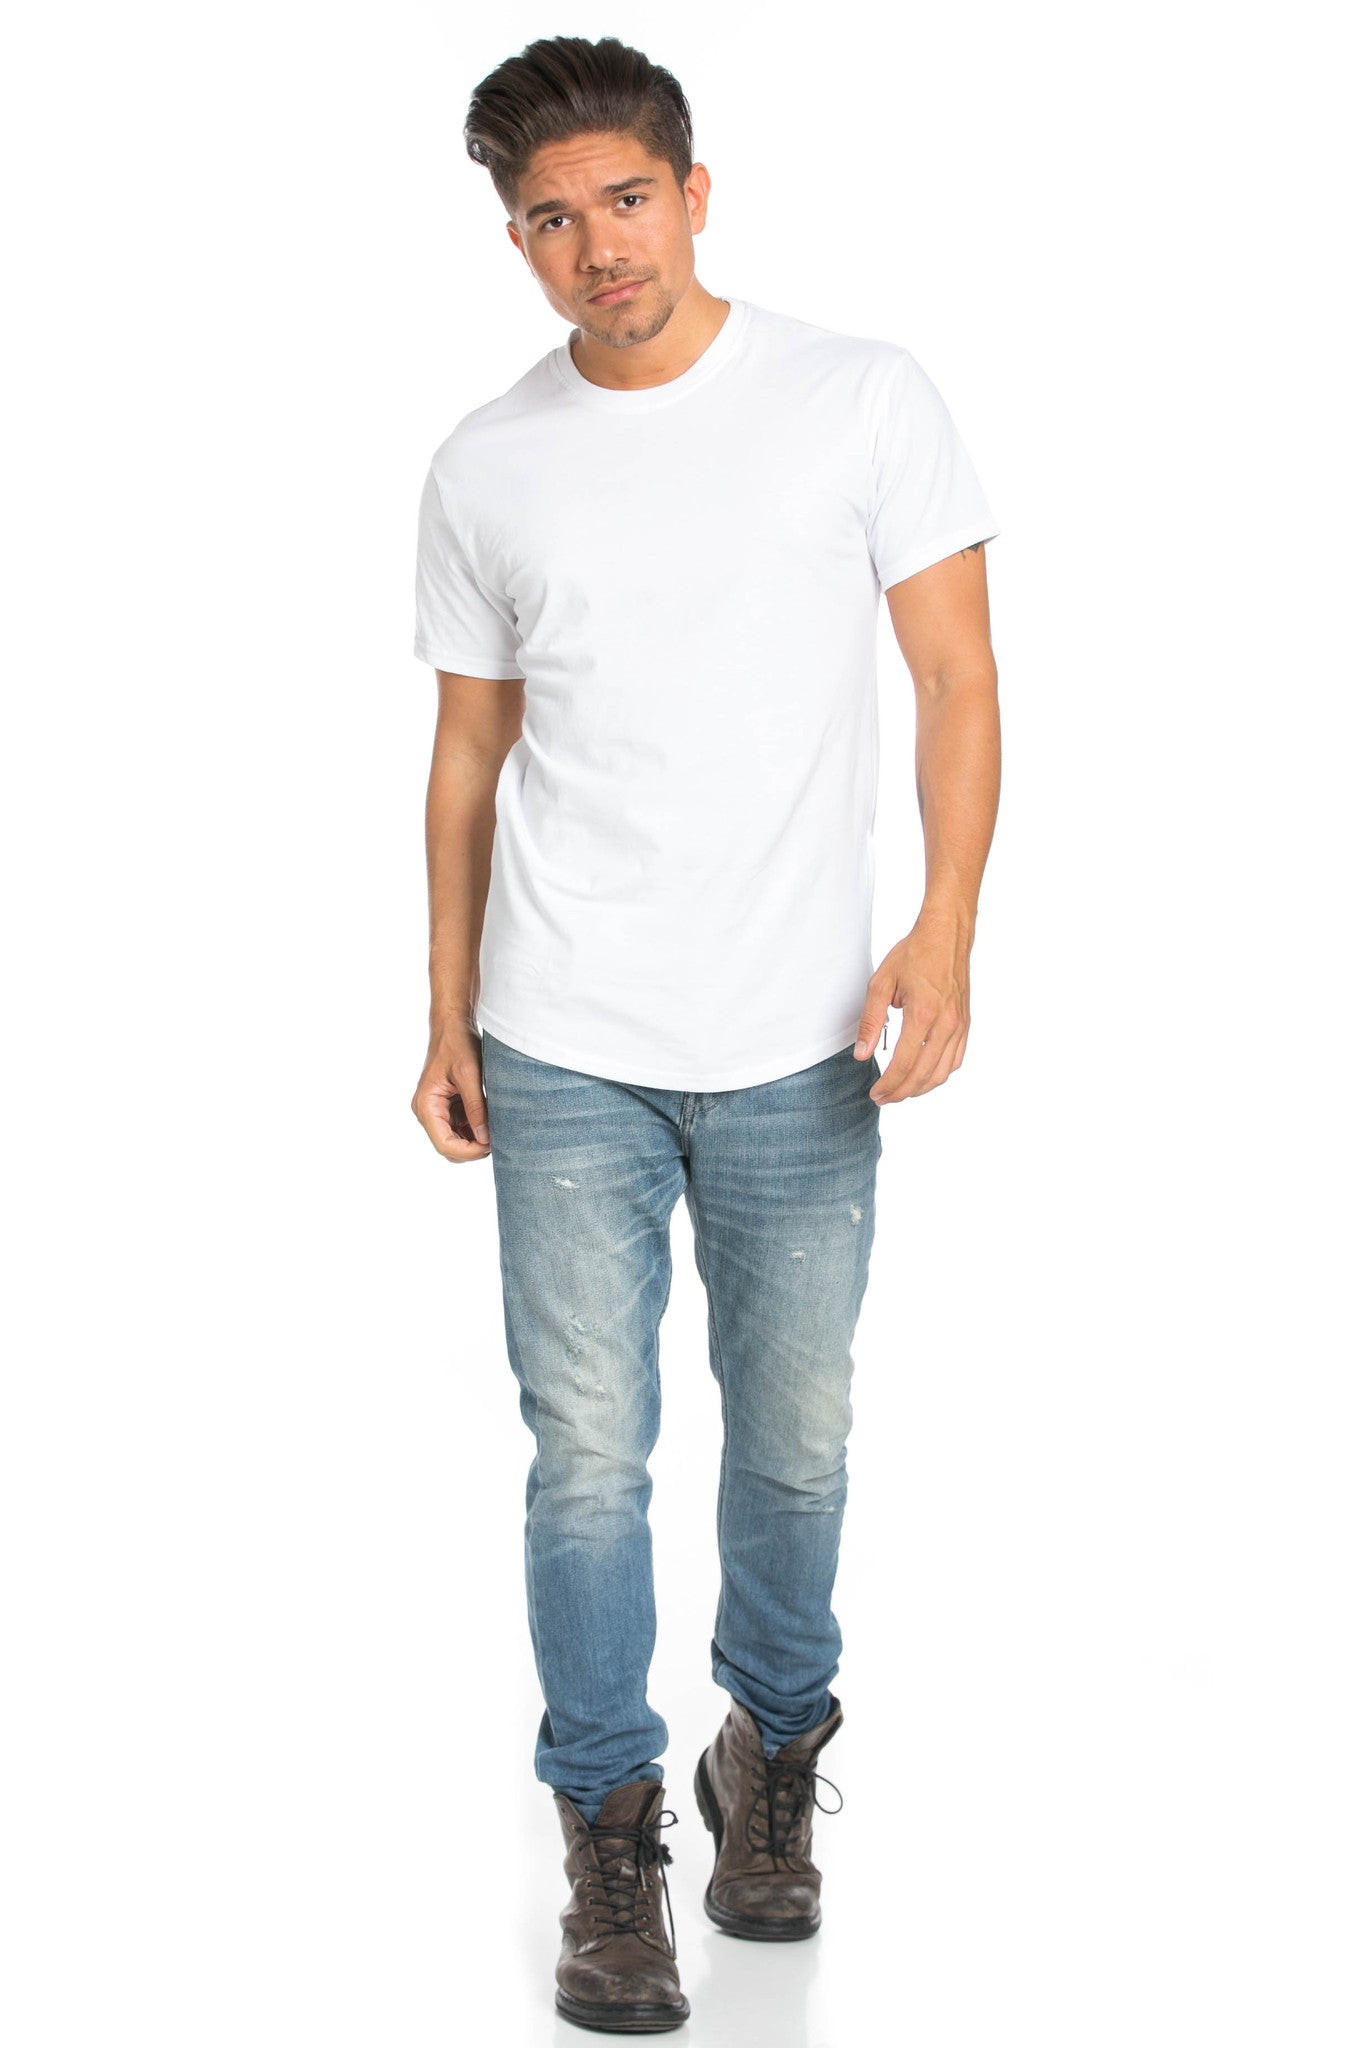 Men's Basic Zipper White T-Shirt - Tops - My Yuccie - 7